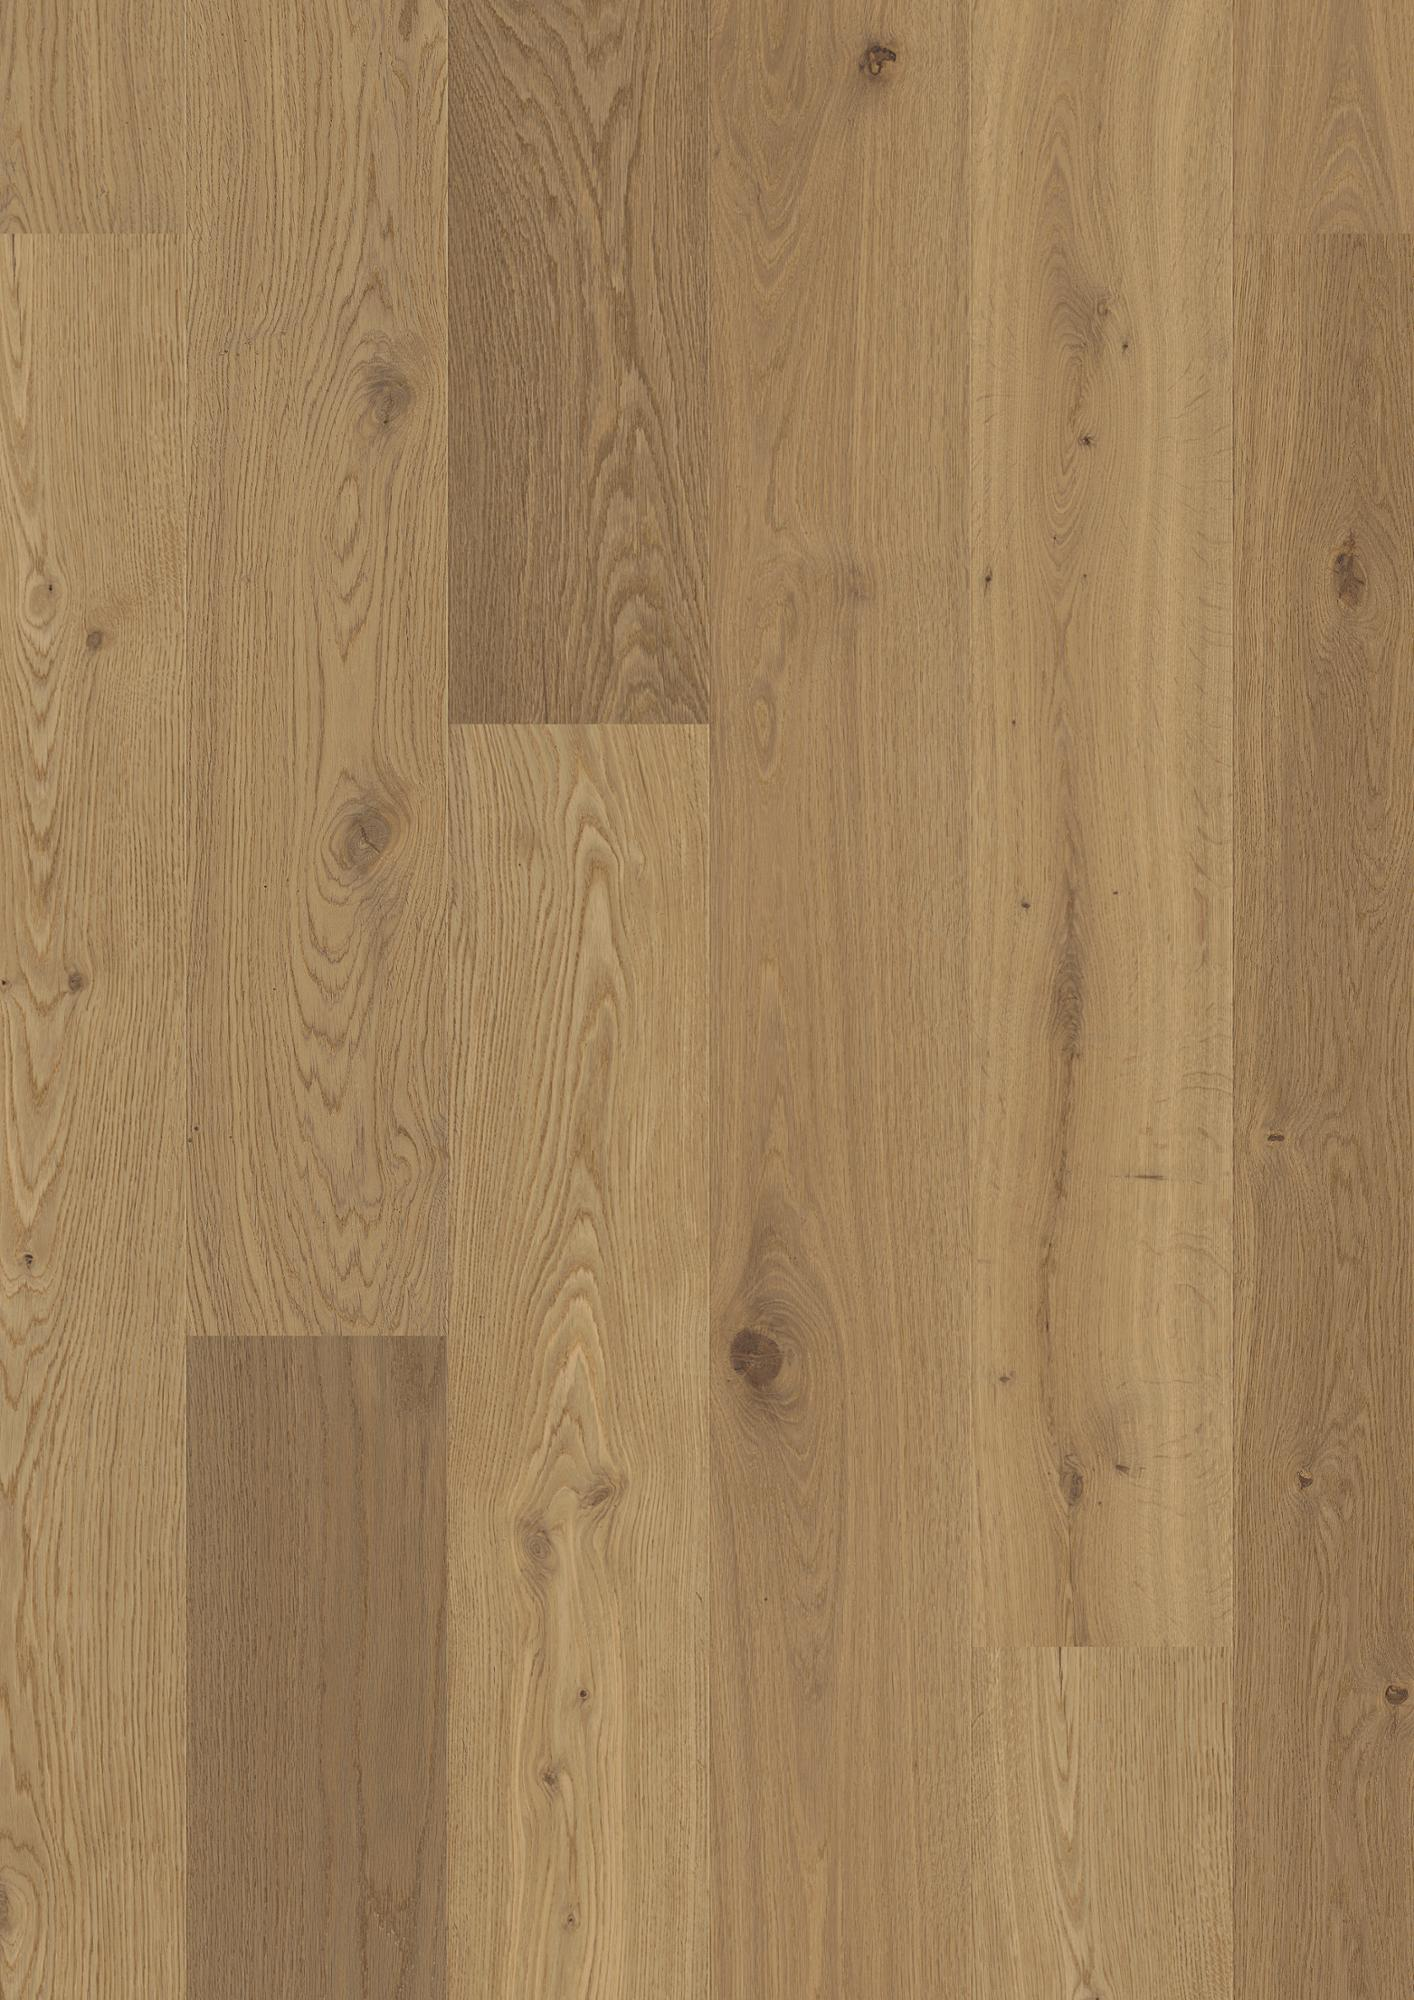 Oak semi smoked, Live Pure lacquer, beveled 2V, brushed, Plank Castle, 14x209x2200mm